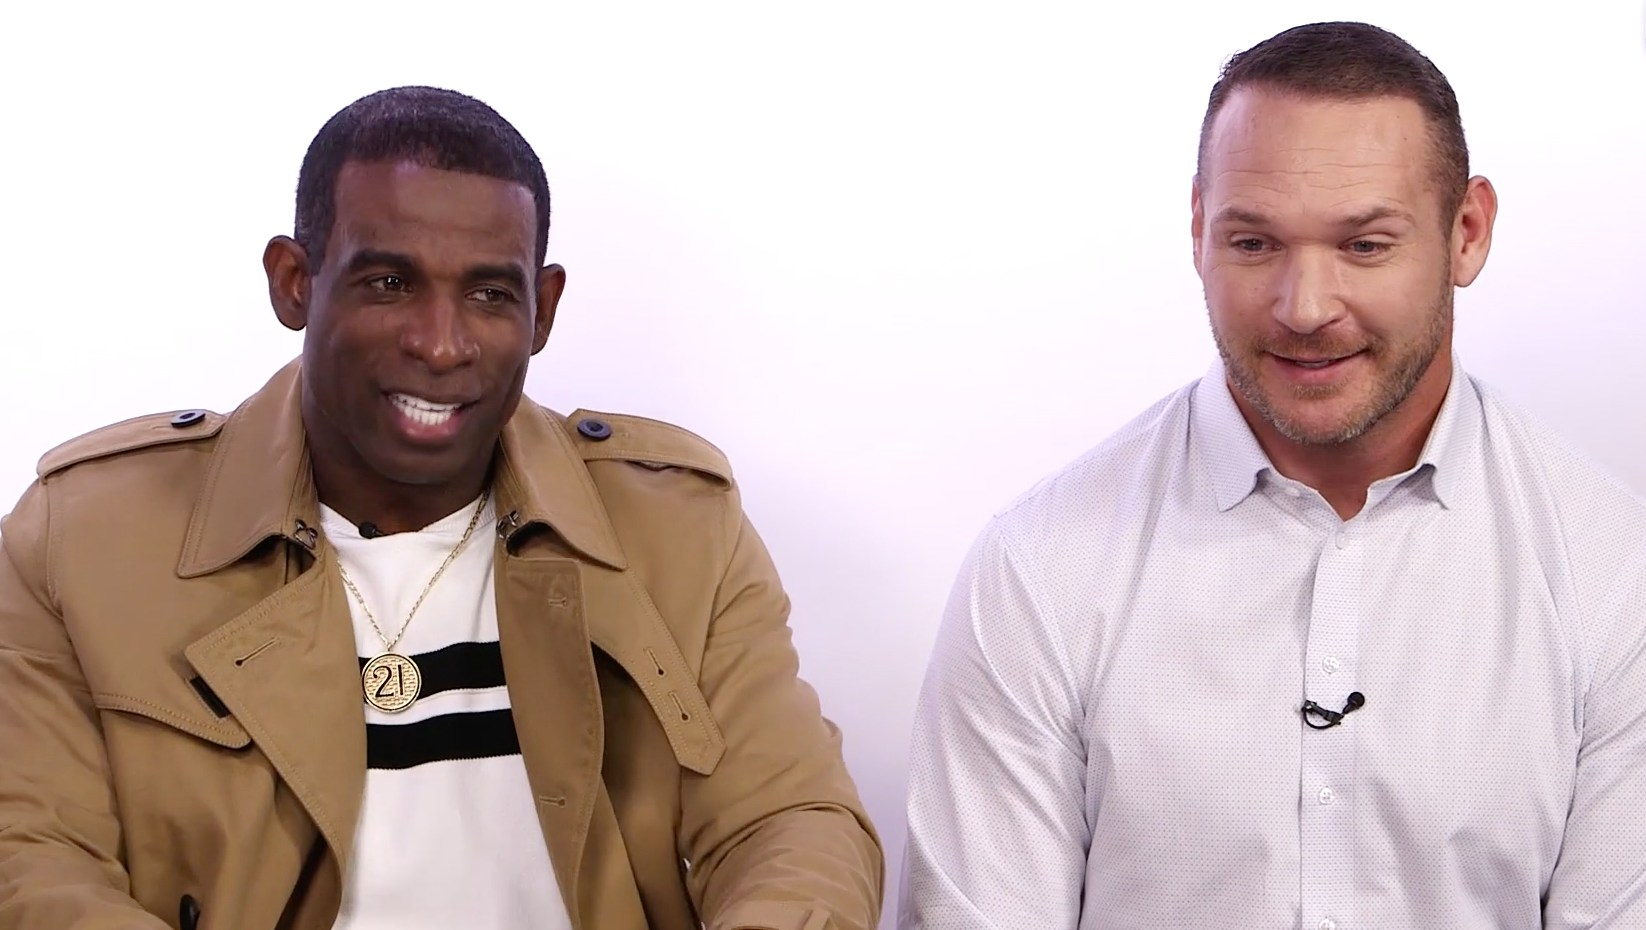 NFL Legends Deion Sanders and Brian Urlacher Weigh in on Celebrities in the News